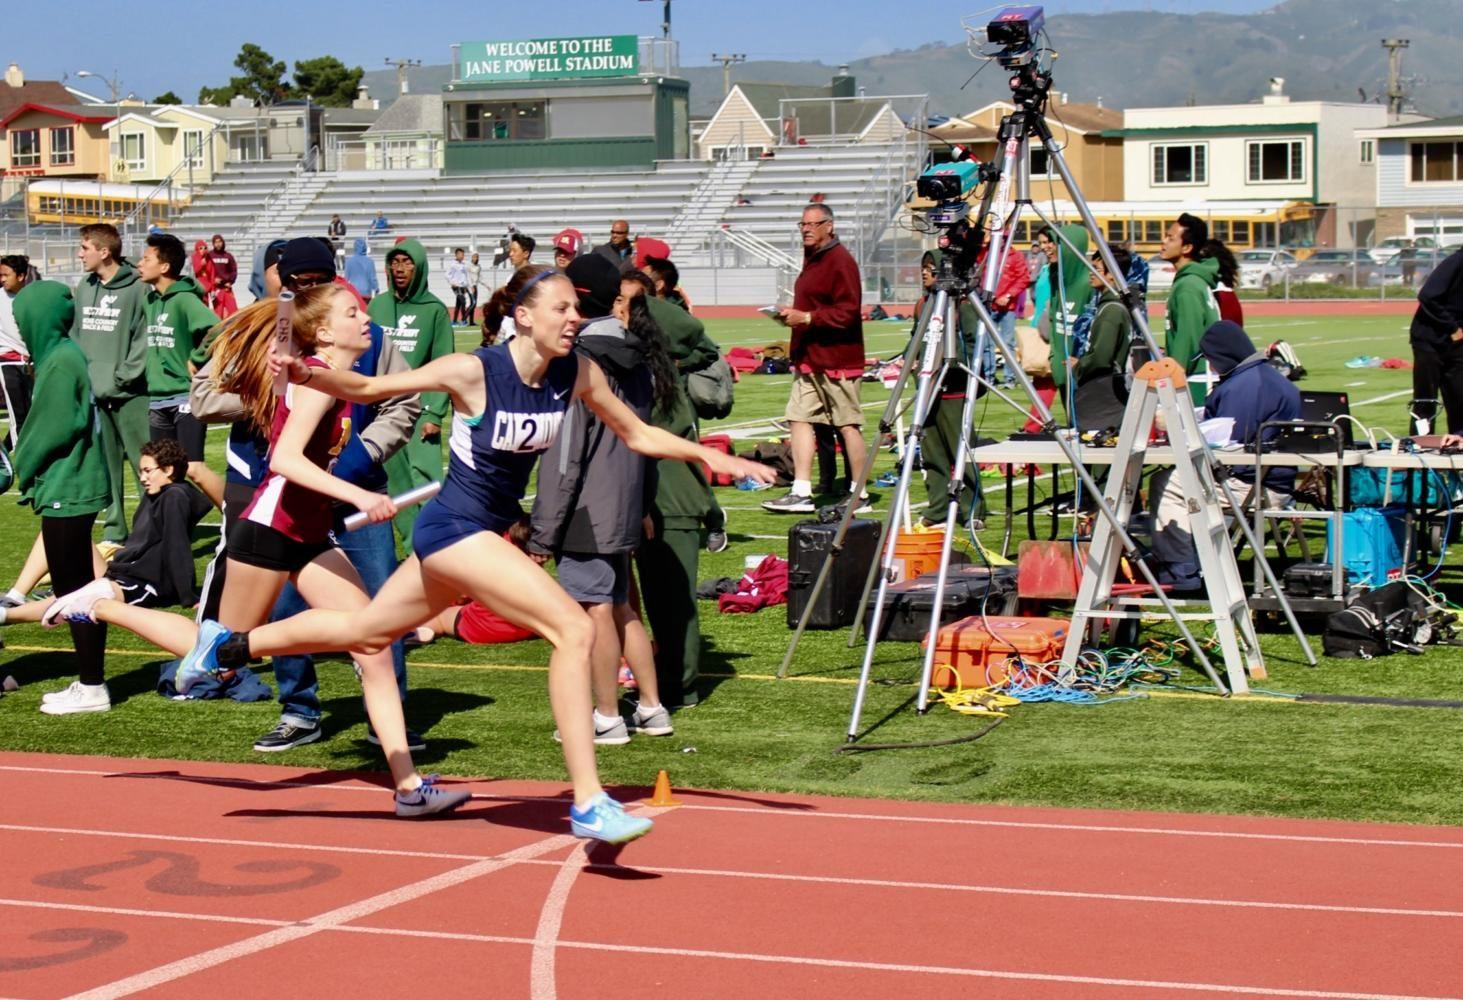 Carlmont+sprints+past+other+school+teams+in+order+to+win+the+race.